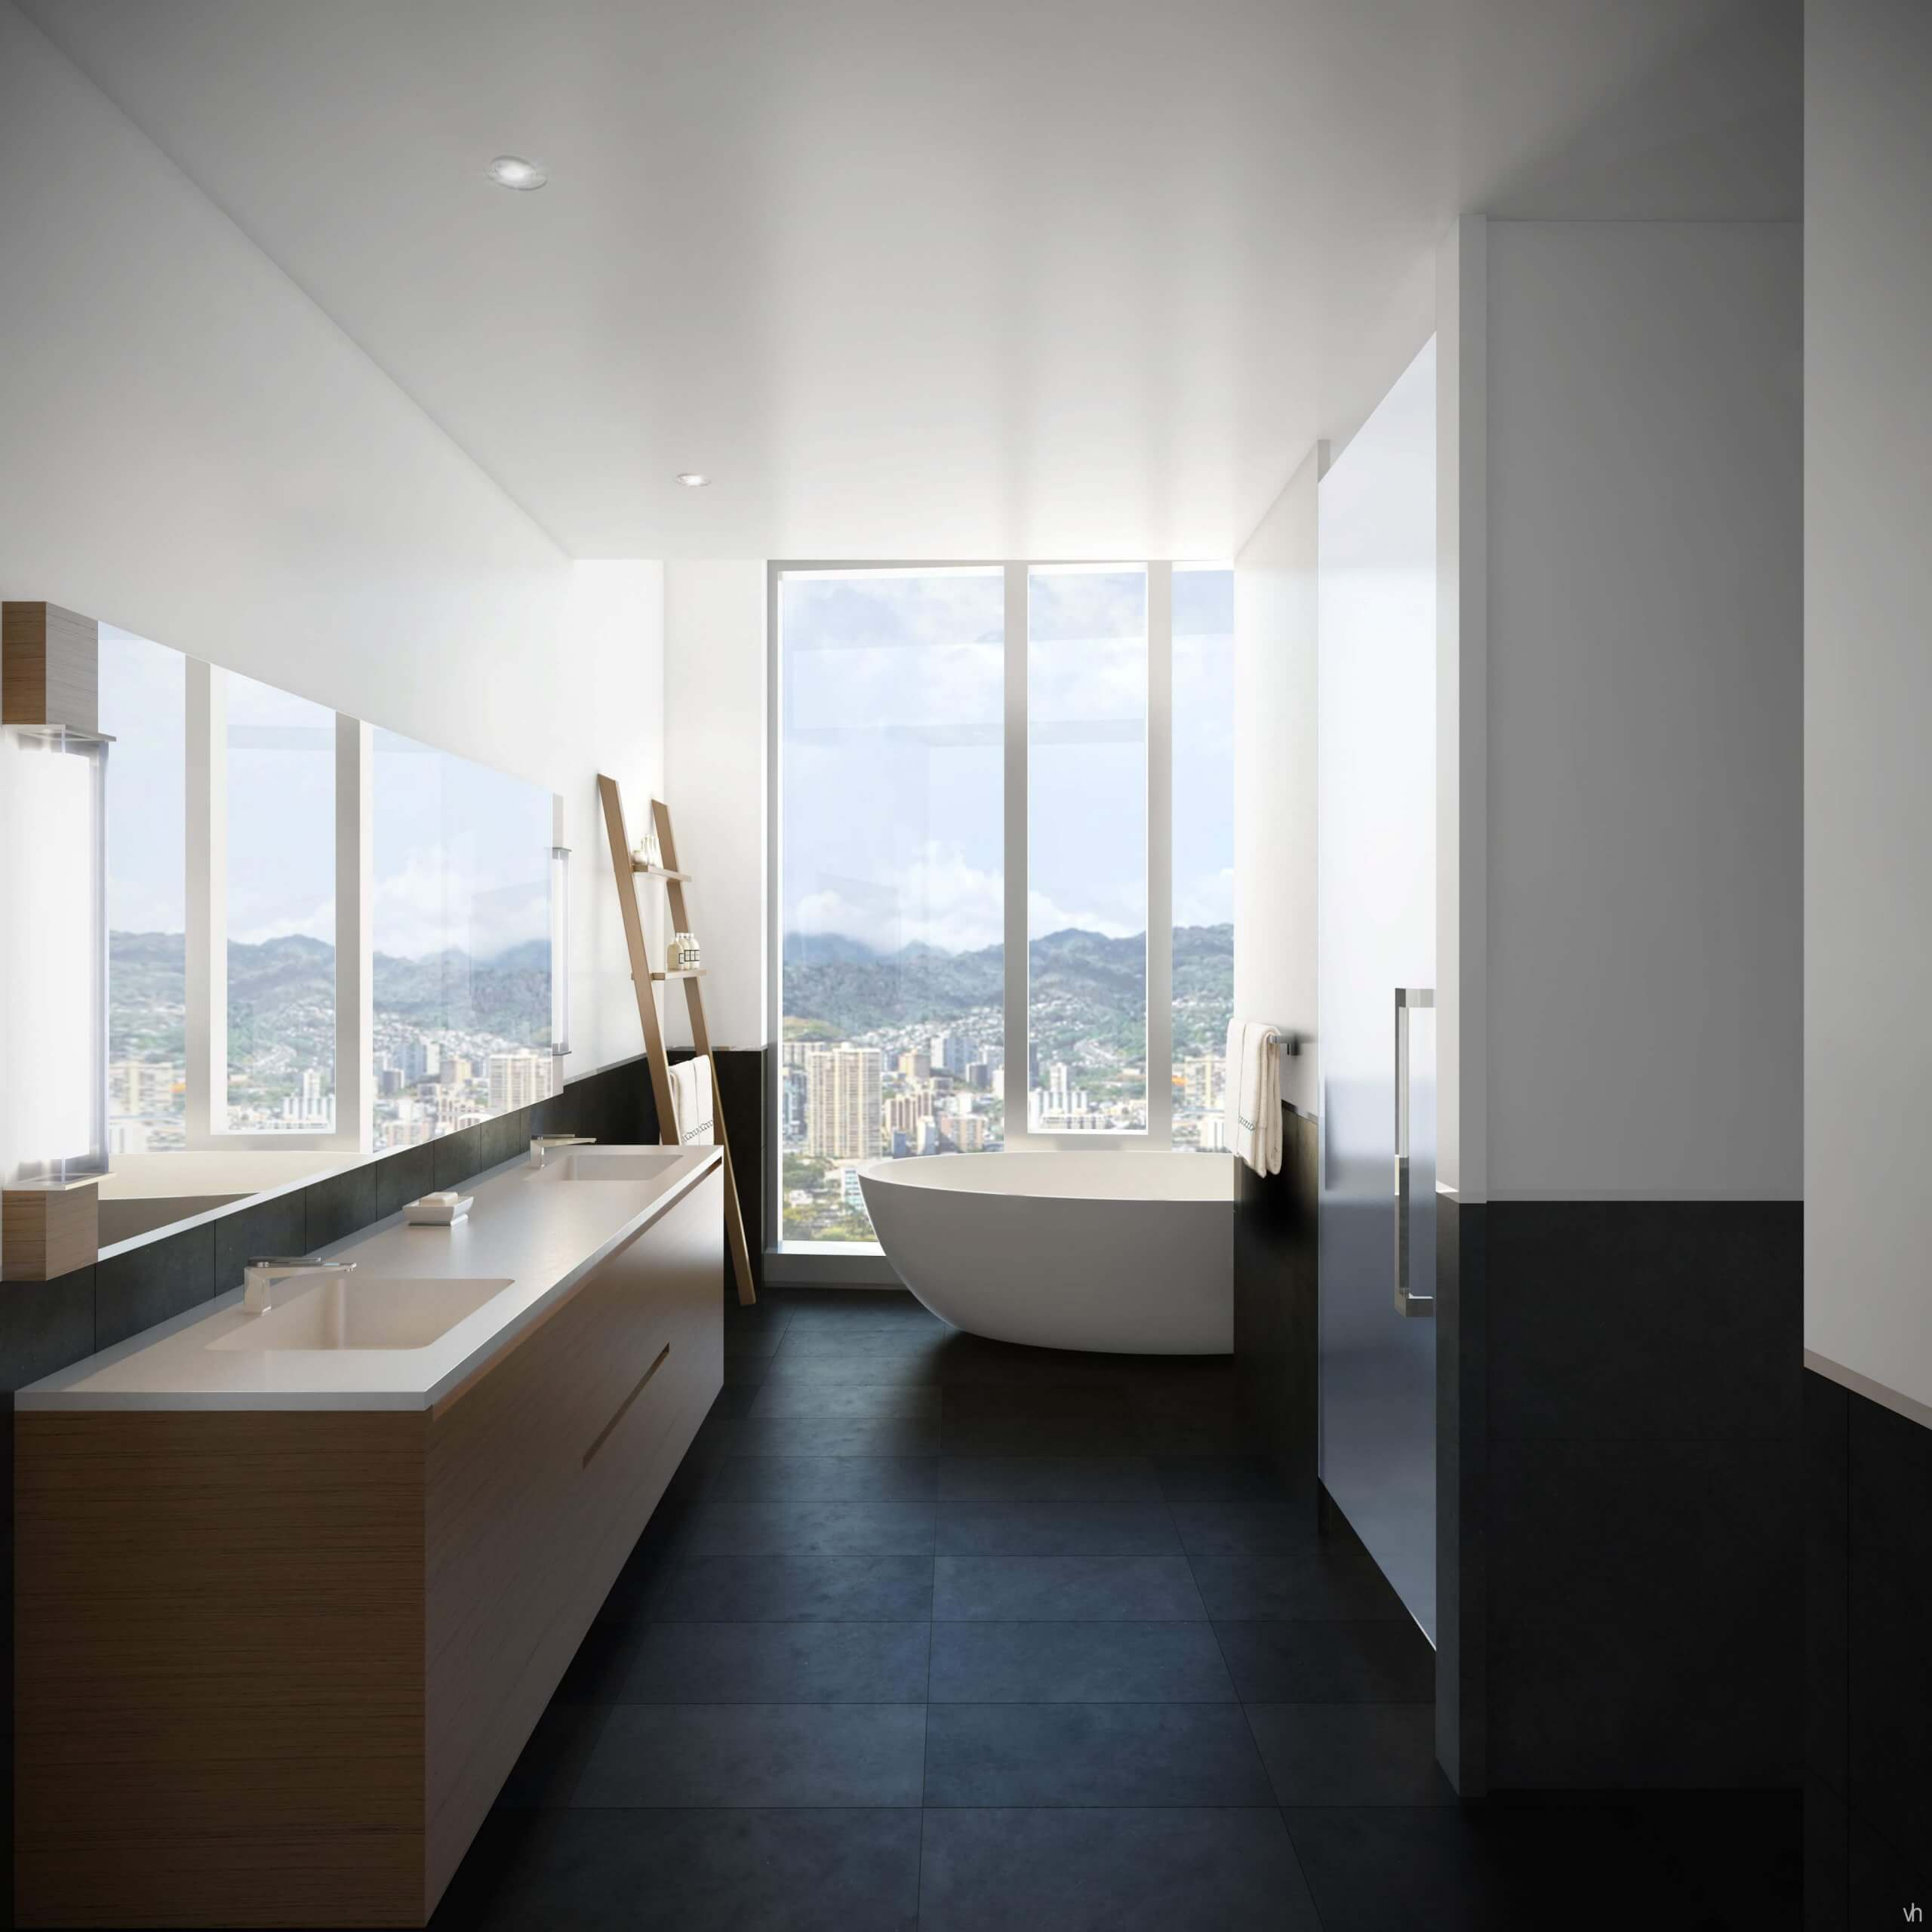 visualhouse_Bathroom-8.0